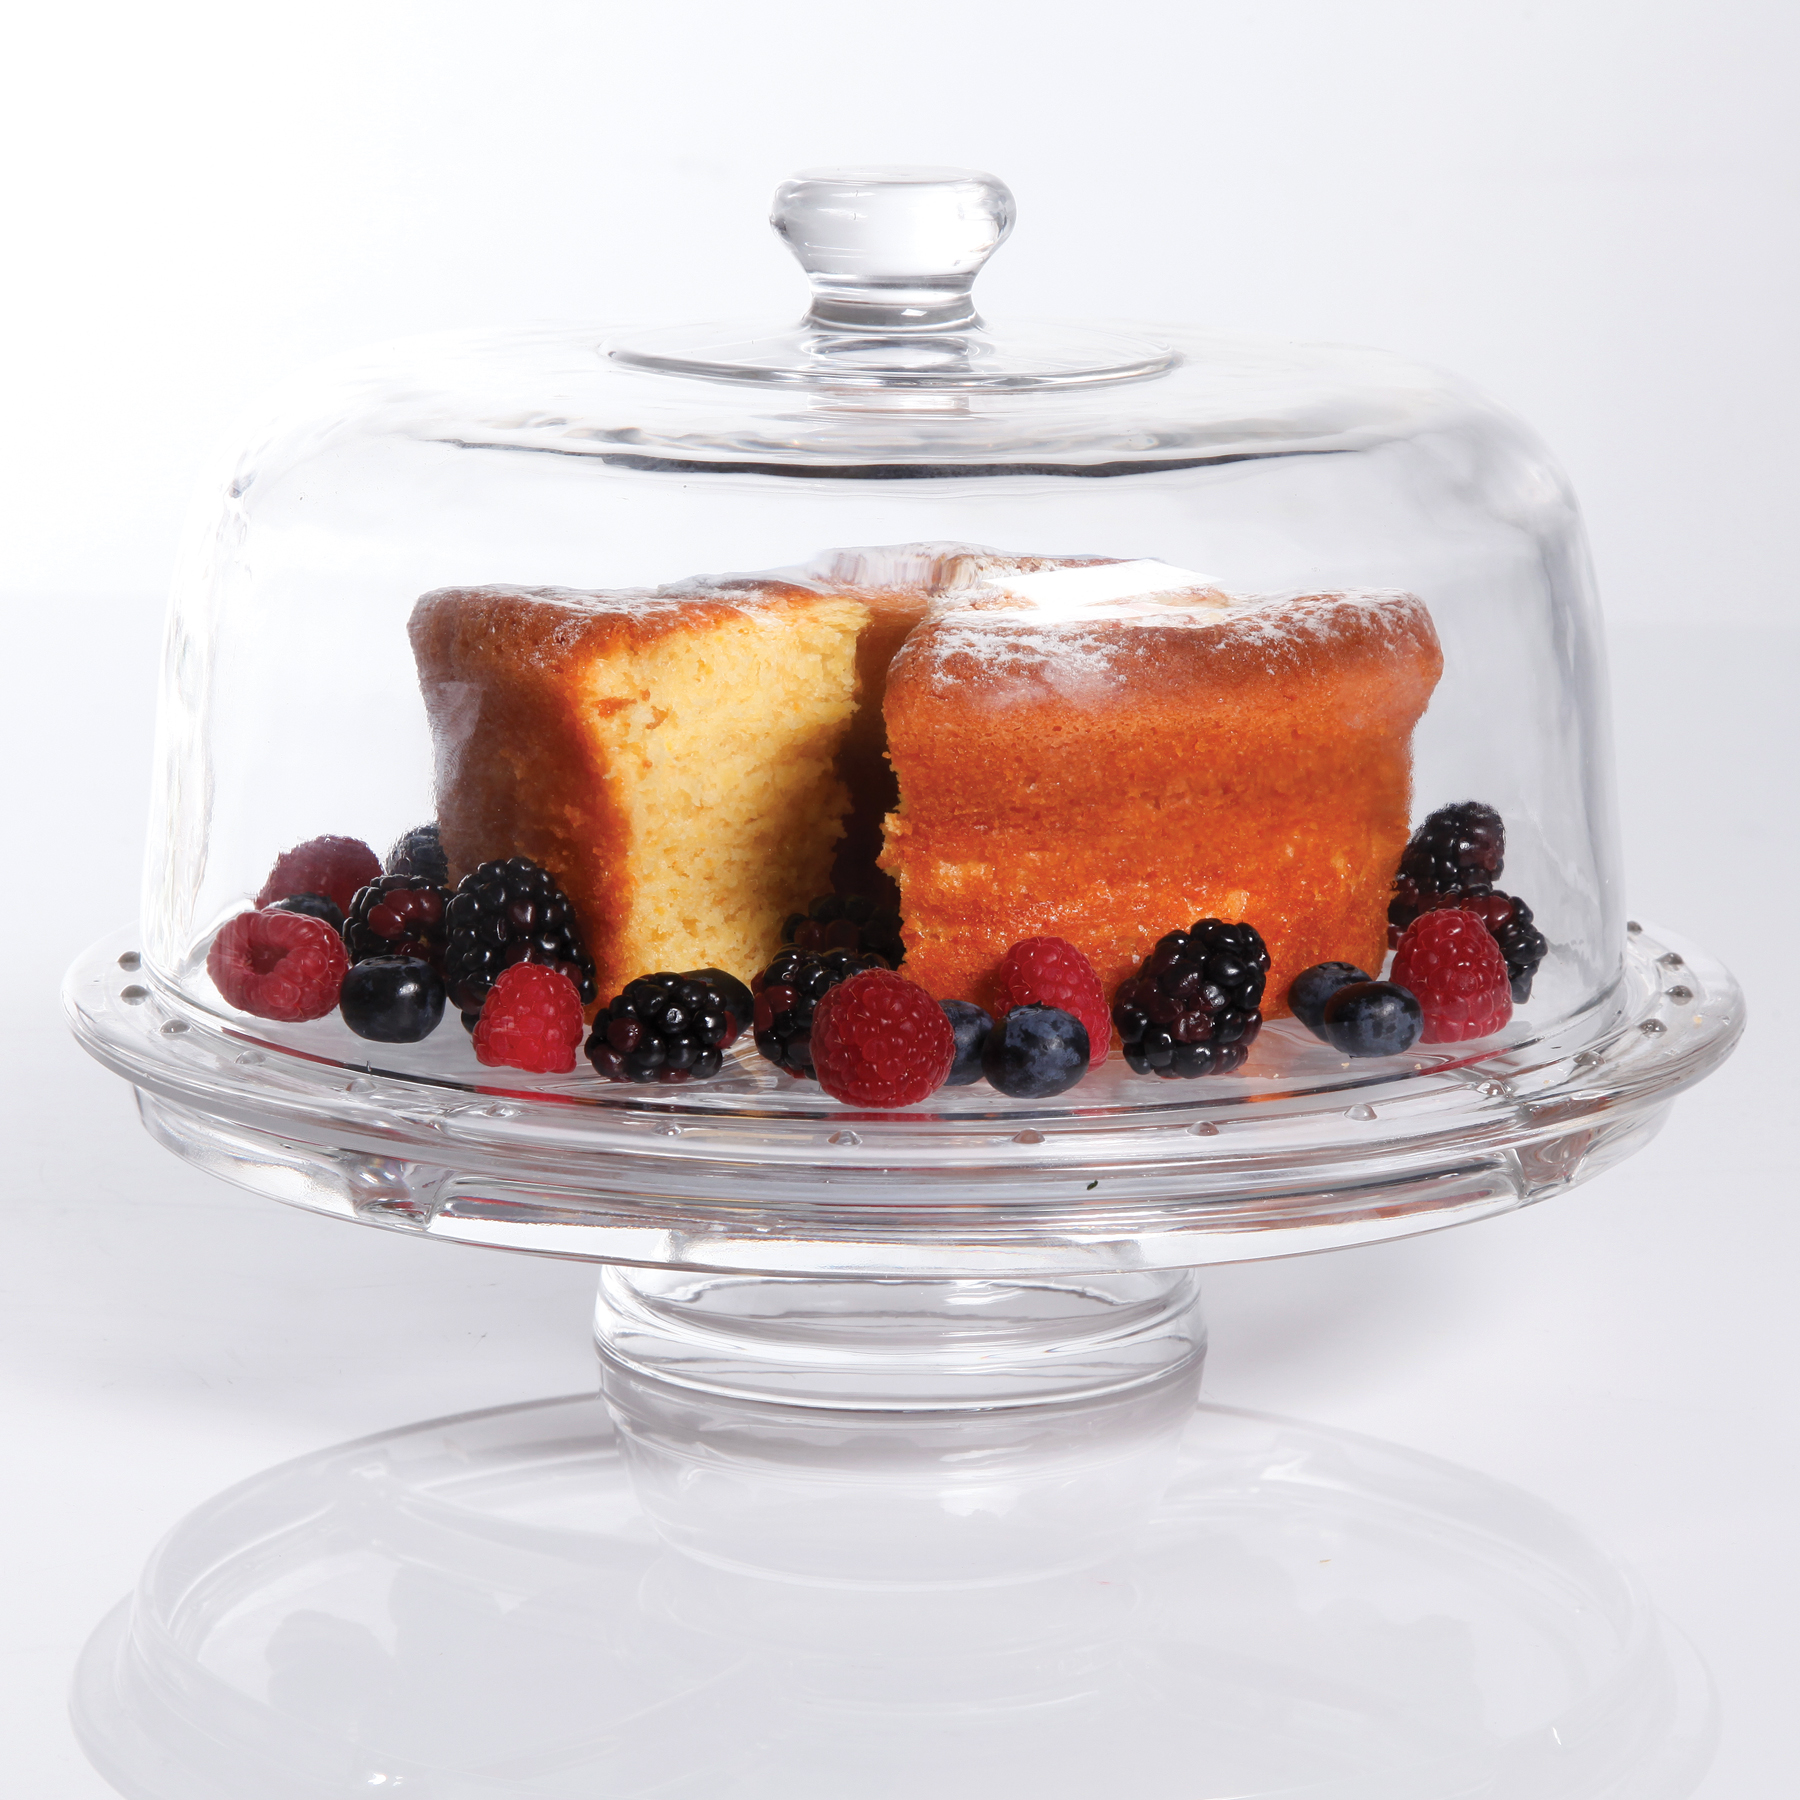 2 in 1 Cake Serving Plate